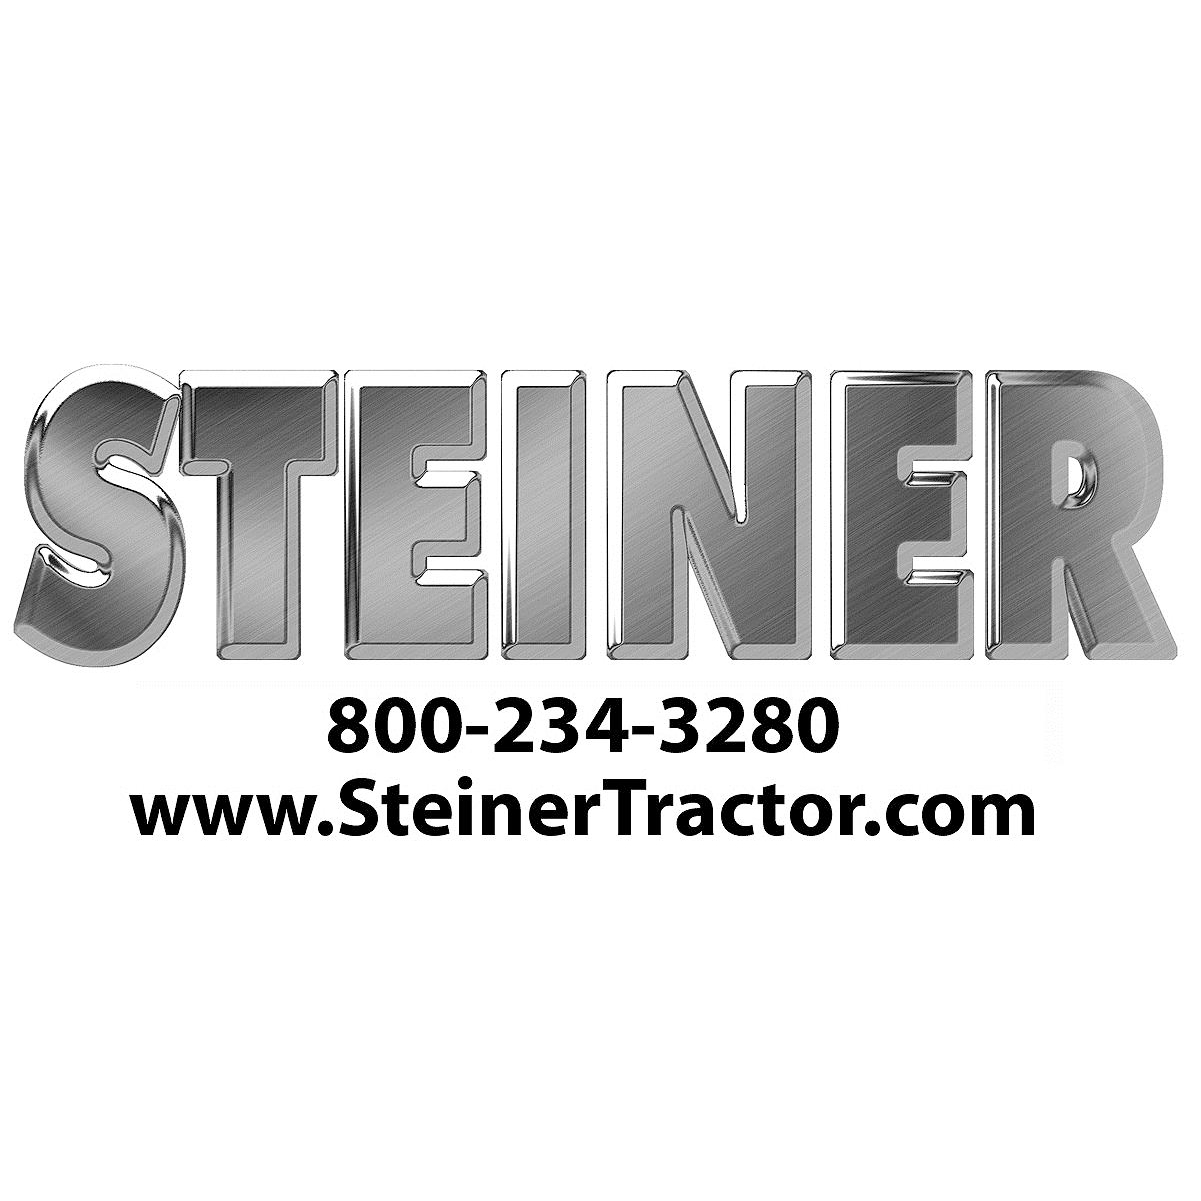 Steiner Tractor Parts - Lennon, MI - Farms, Orchards & Ranches